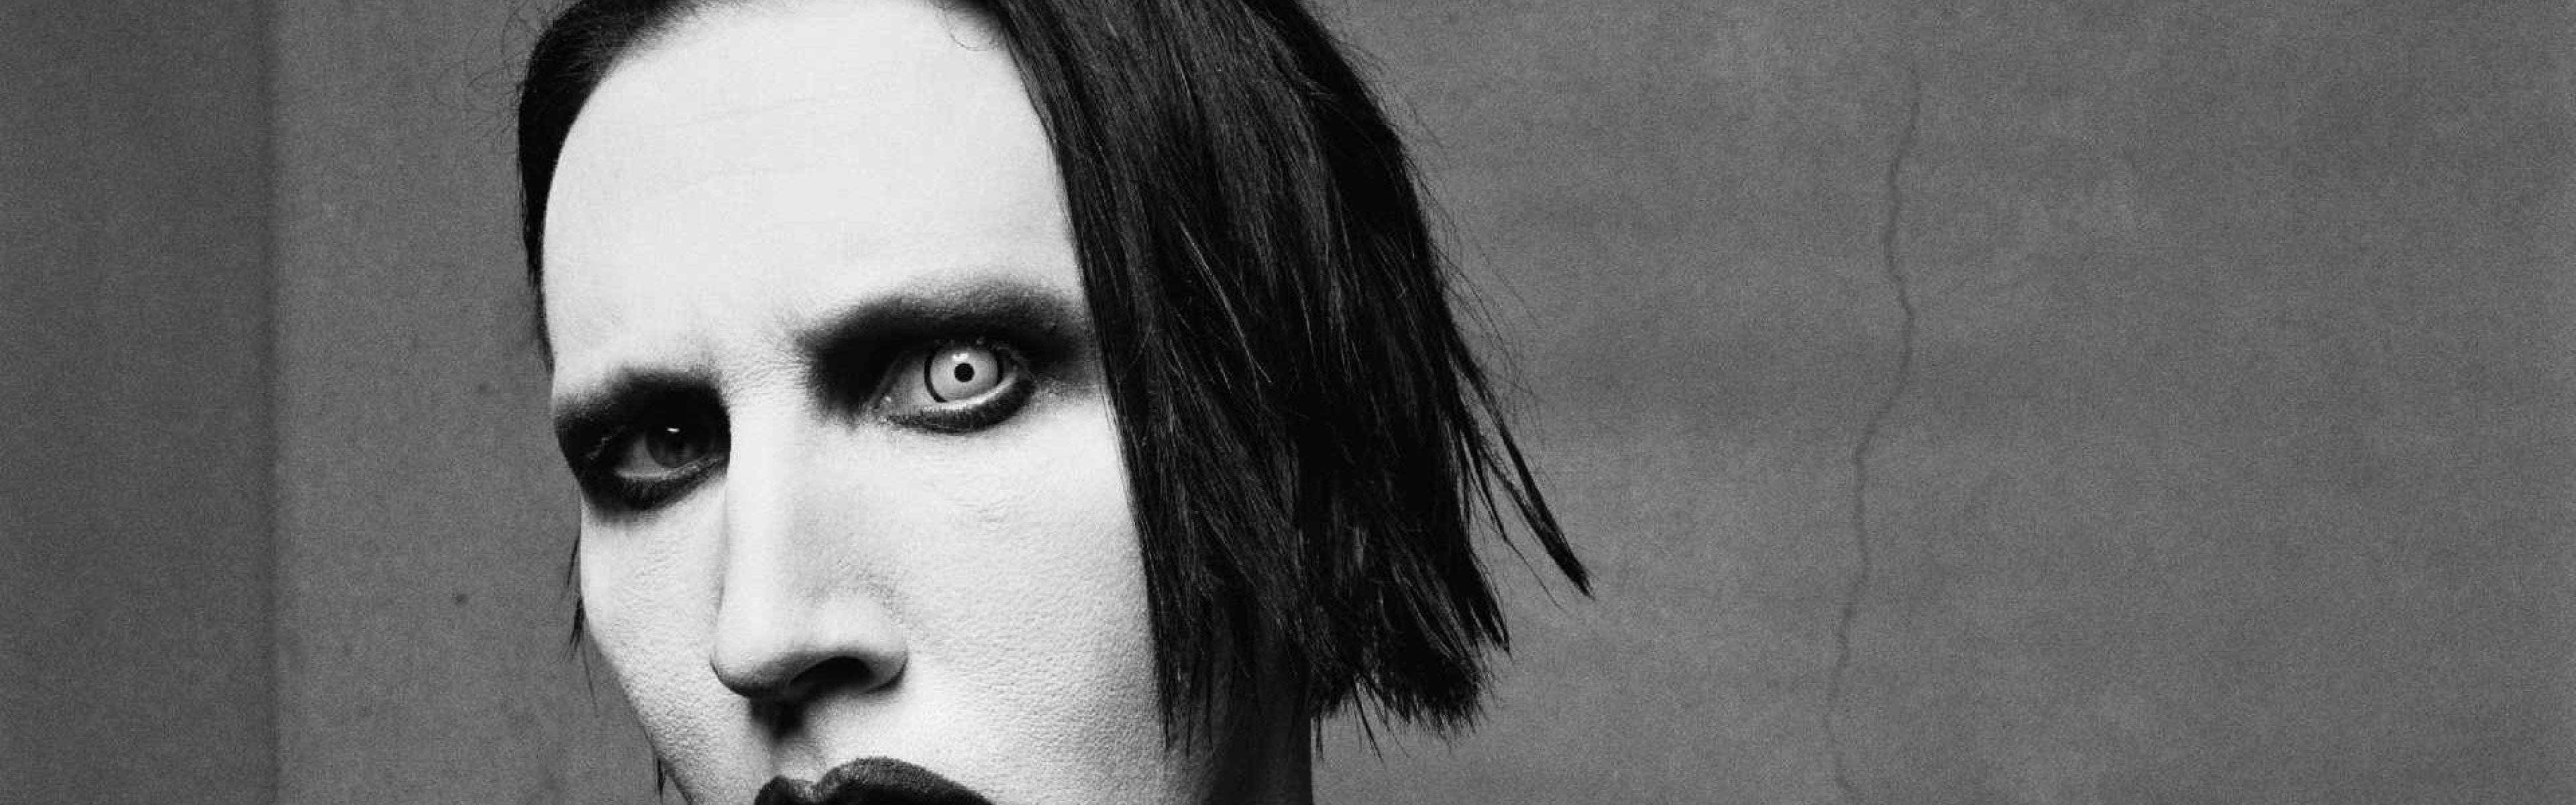 HD Marilyn Manson 4k Pics for Android. 0.418 MB